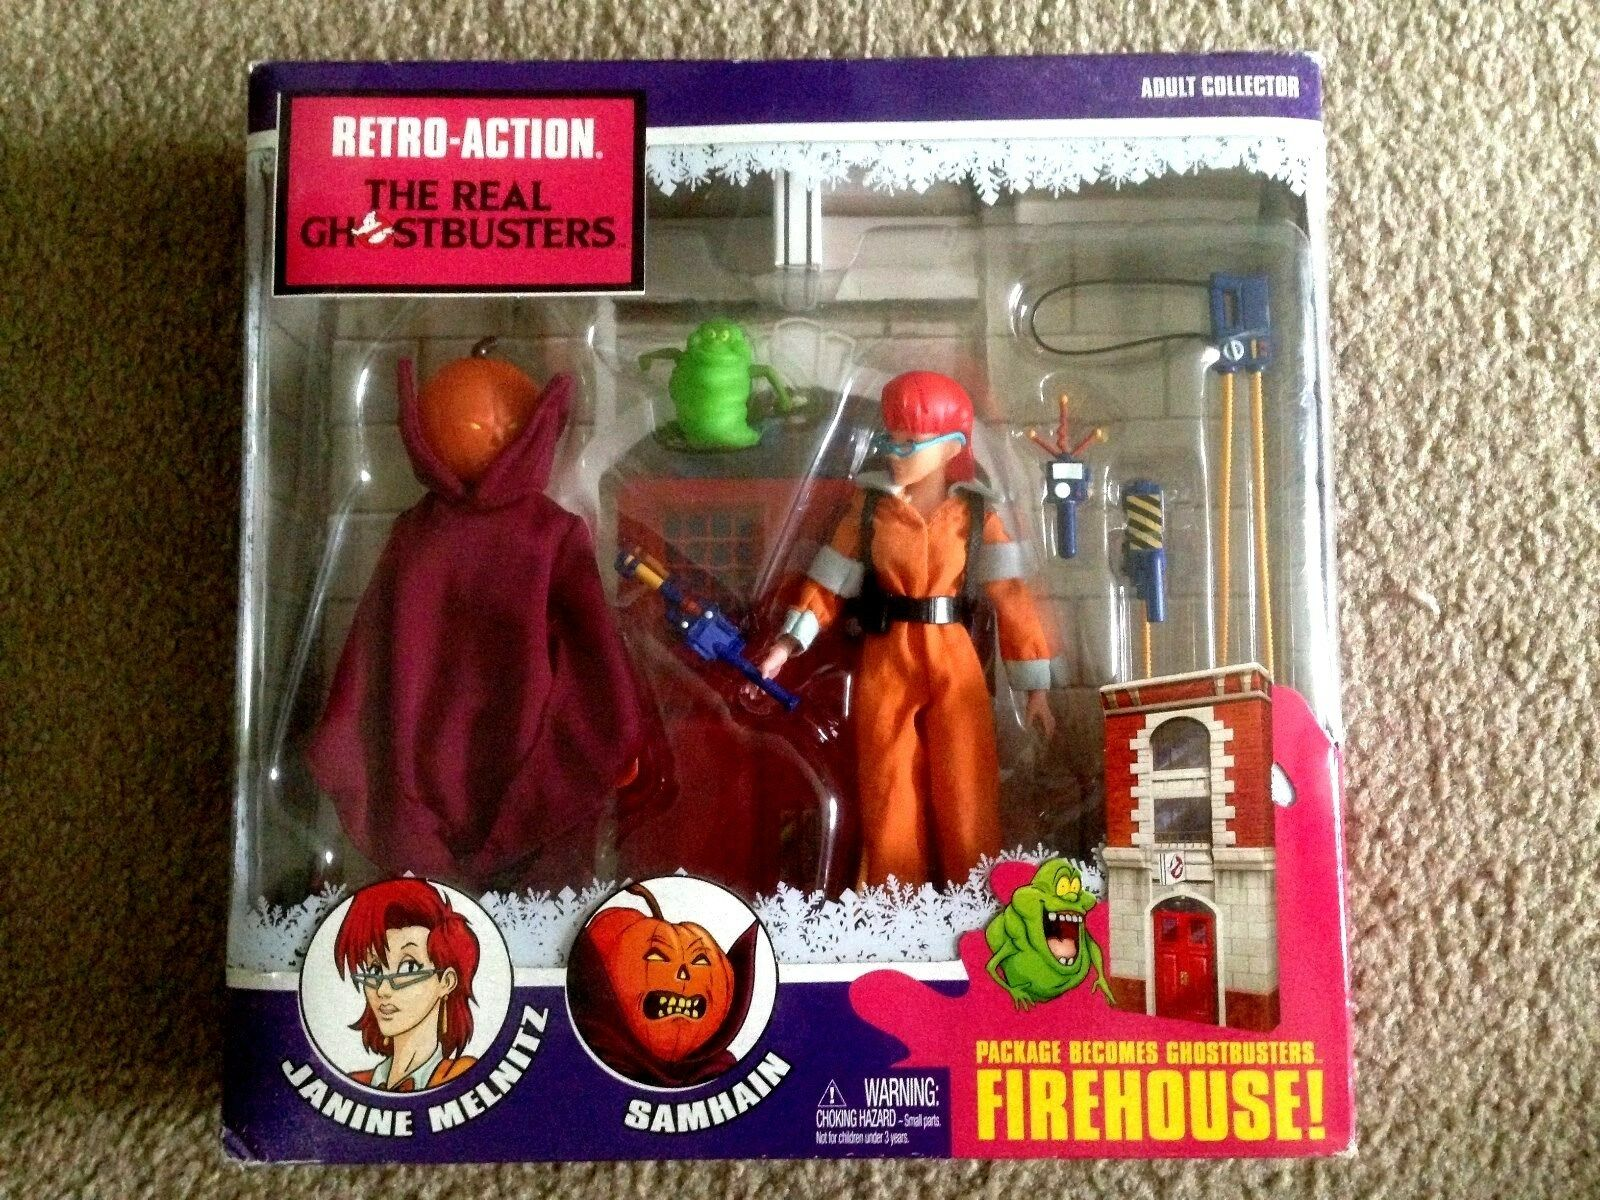 The Real GHOSTBUSTERS Firehouse Mattel Retro-Action Playset NIB Free Shipping